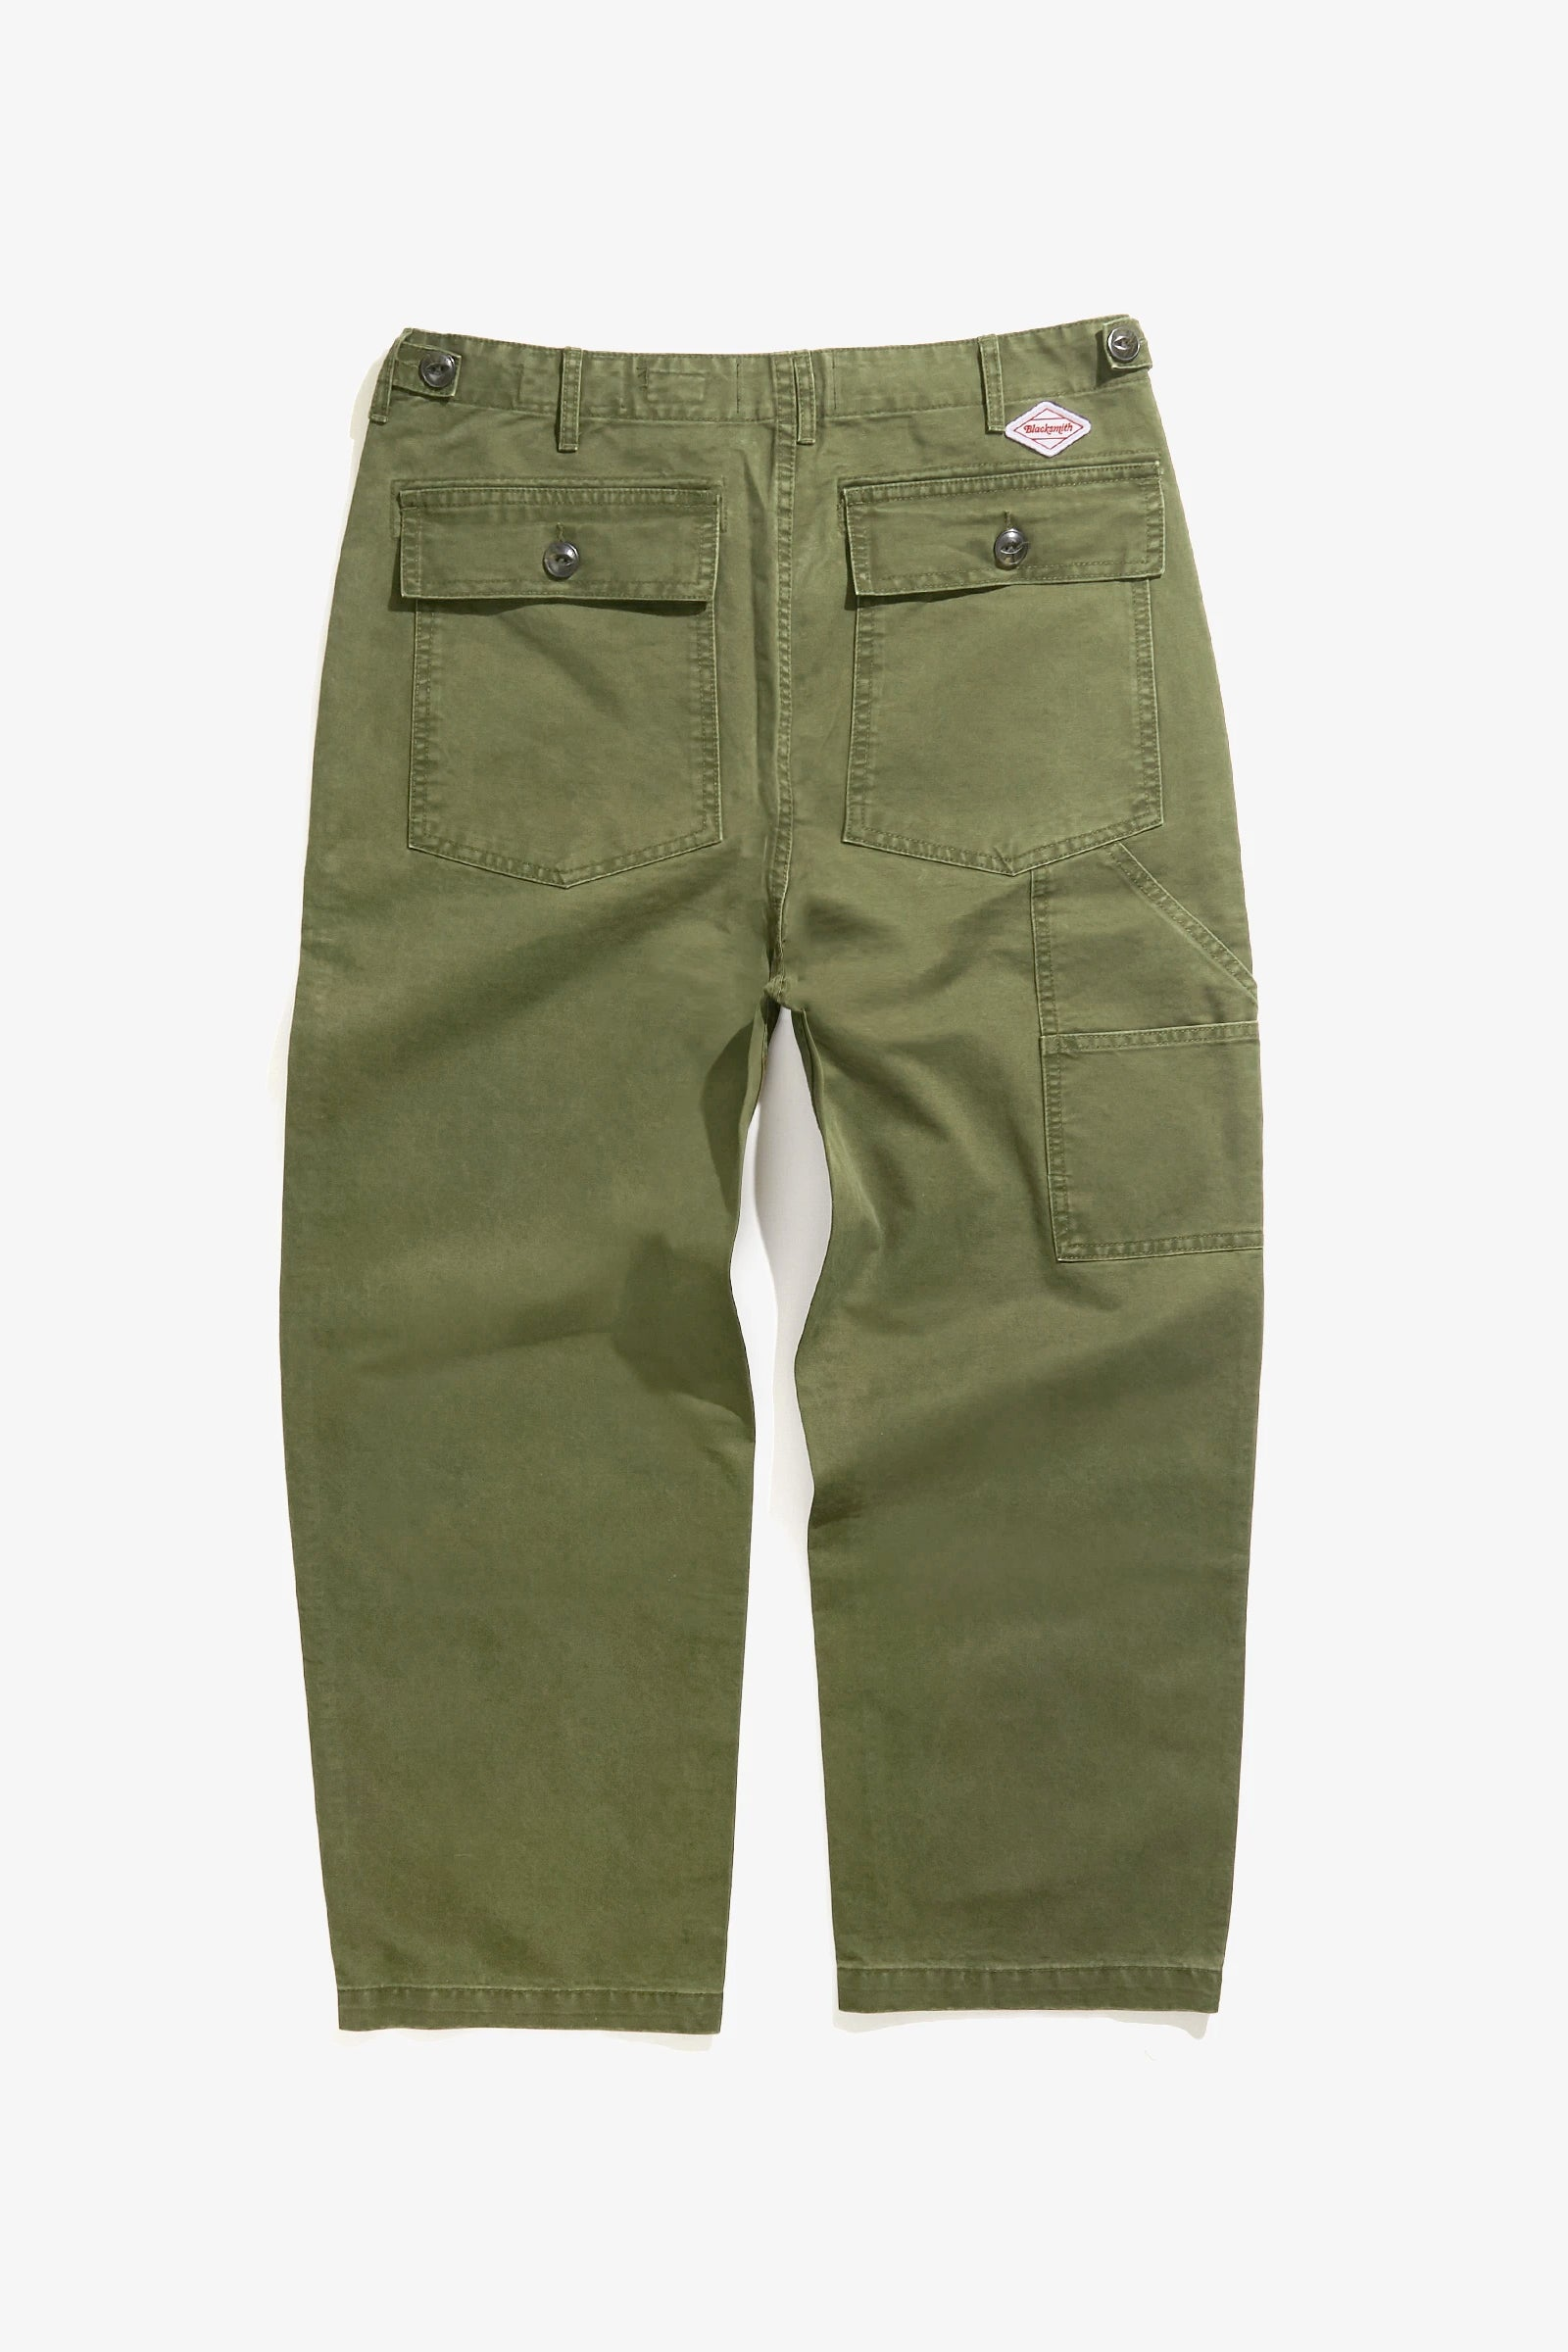 Blacksmith - Sowing Field Pants - Olive